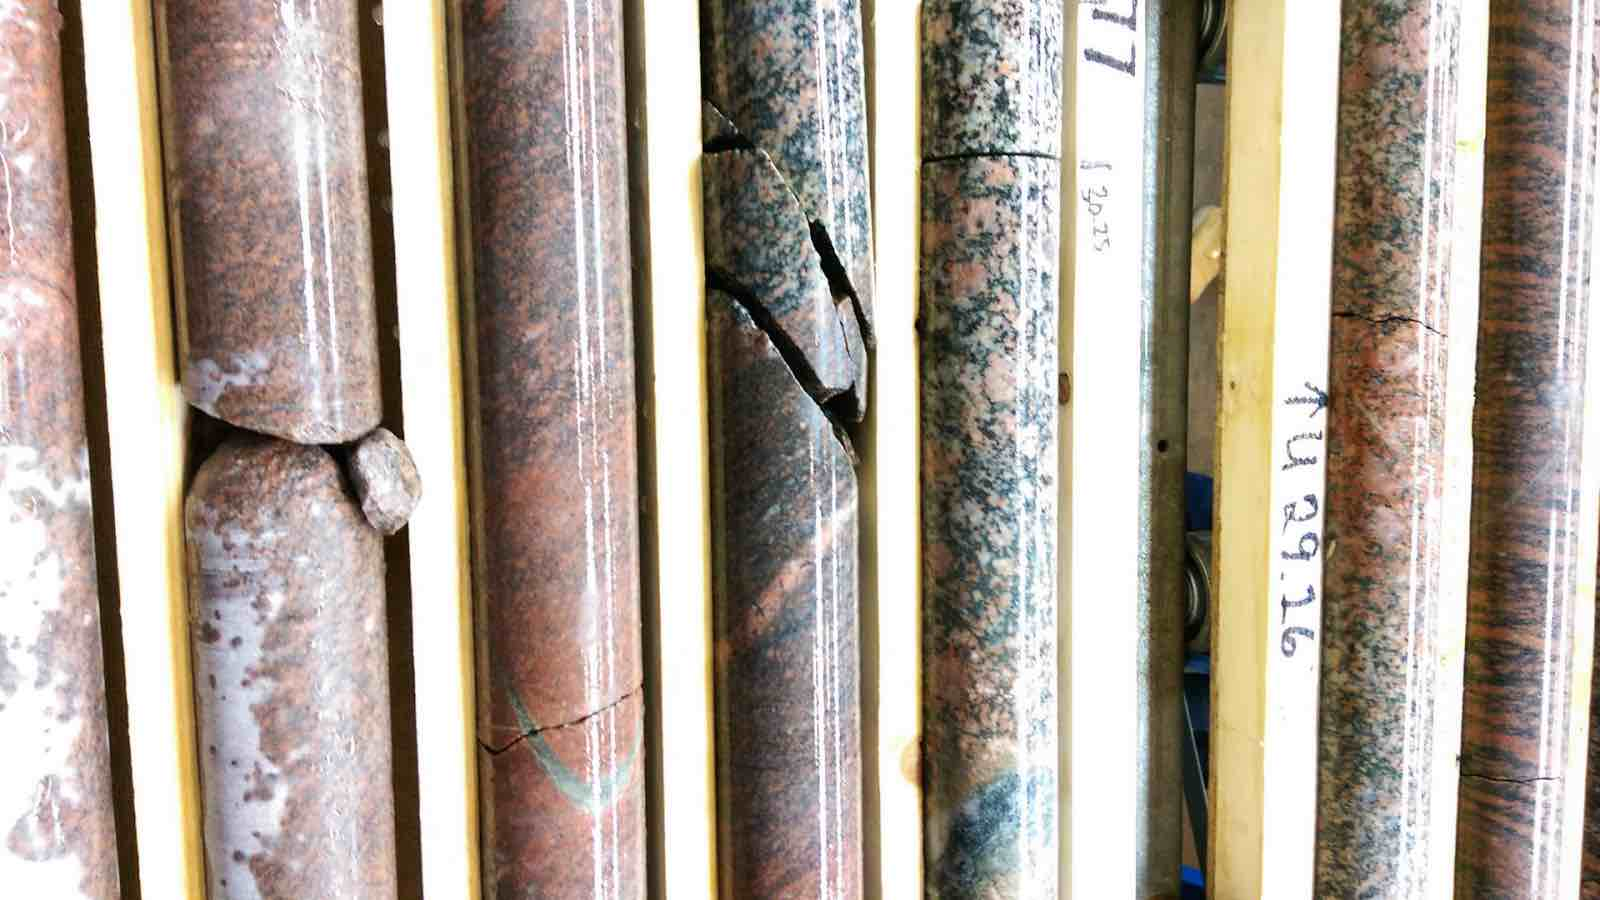 Cylinders of polished stone in various colors separated by planks of wood